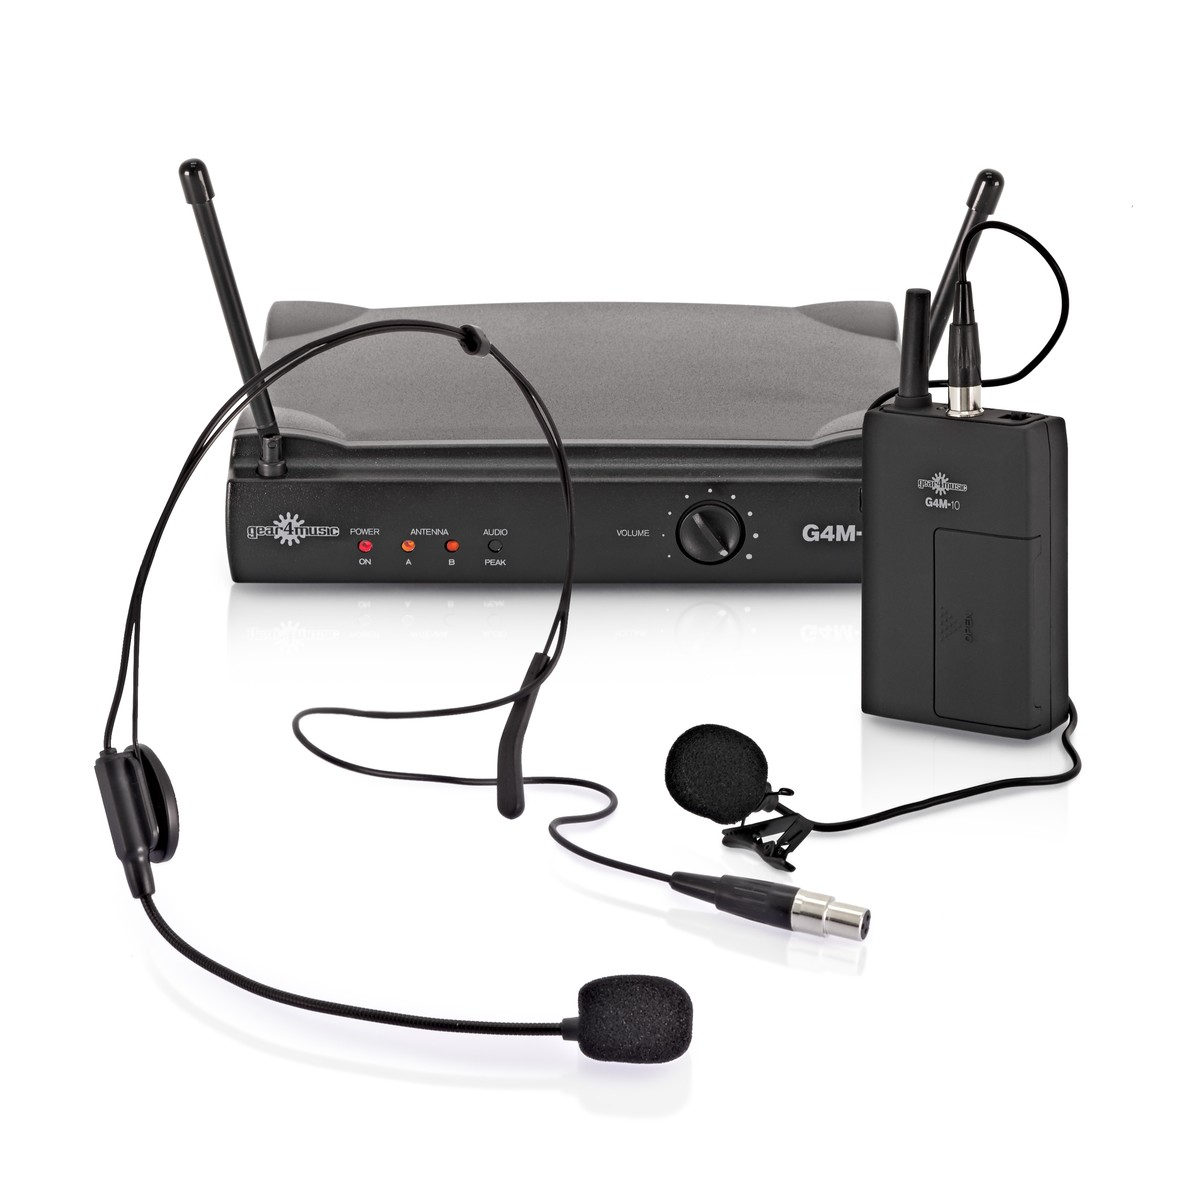 single lavalier headset wireless mic system by gear4music b stock at gear4music. Black Bedroom Furniture Sets. Home Design Ideas